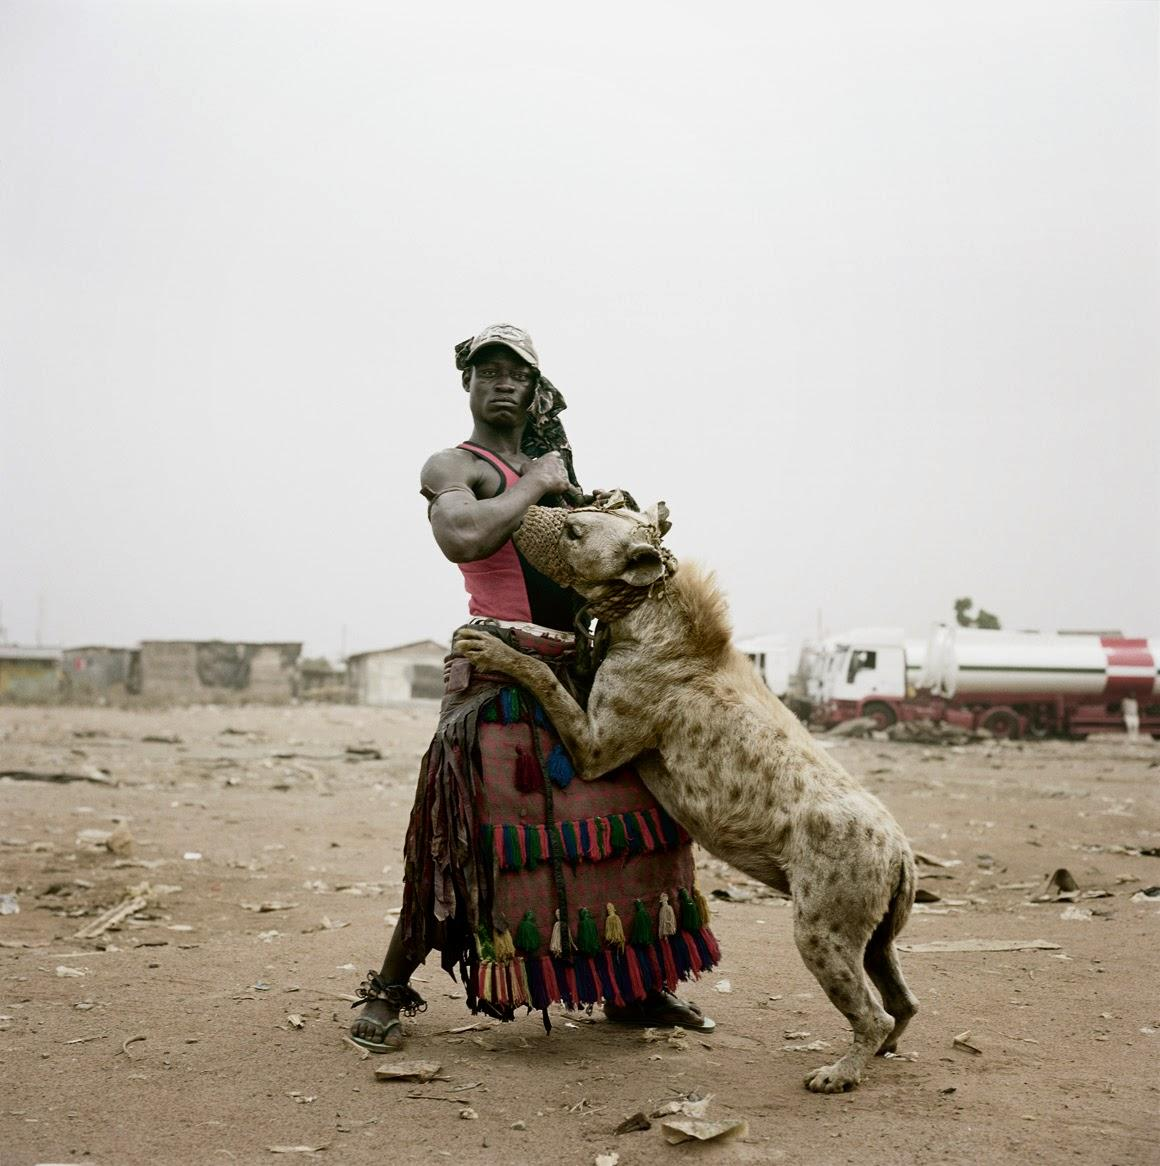 manliest photos on the internet, funny manly images, nigerian man playing with hyena